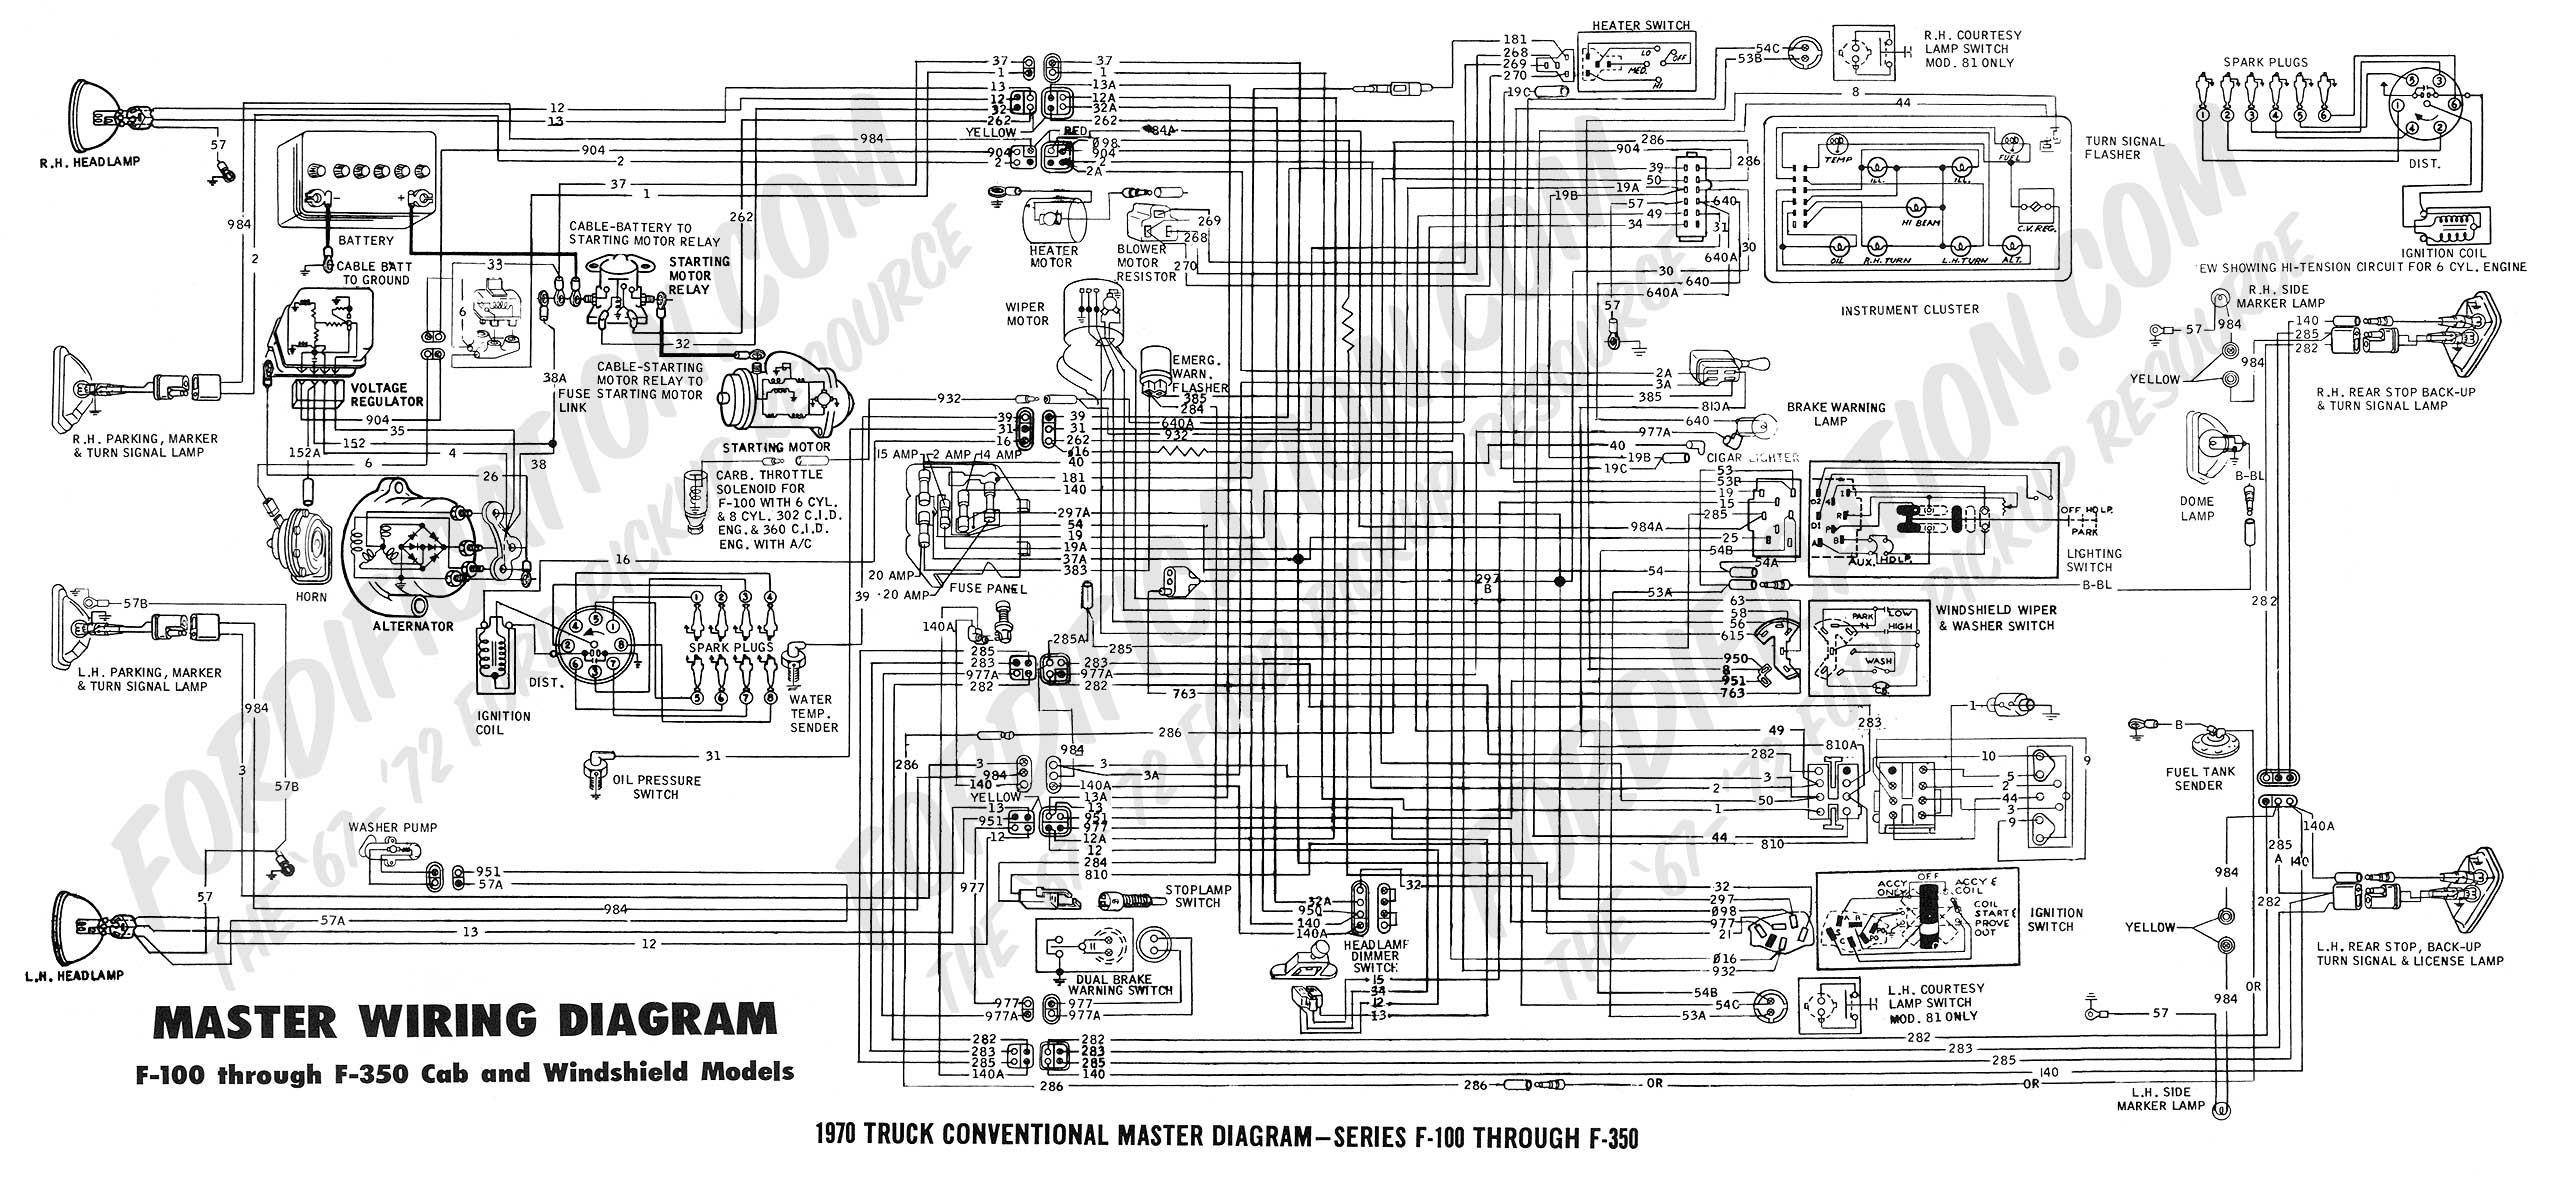 wiring diagram 70_master 1986 ford f150 wiring diagram 1986 ford bronco ii wiring diagram ignition switch wiring diagram 1988 ford f150 at crackthecode.co